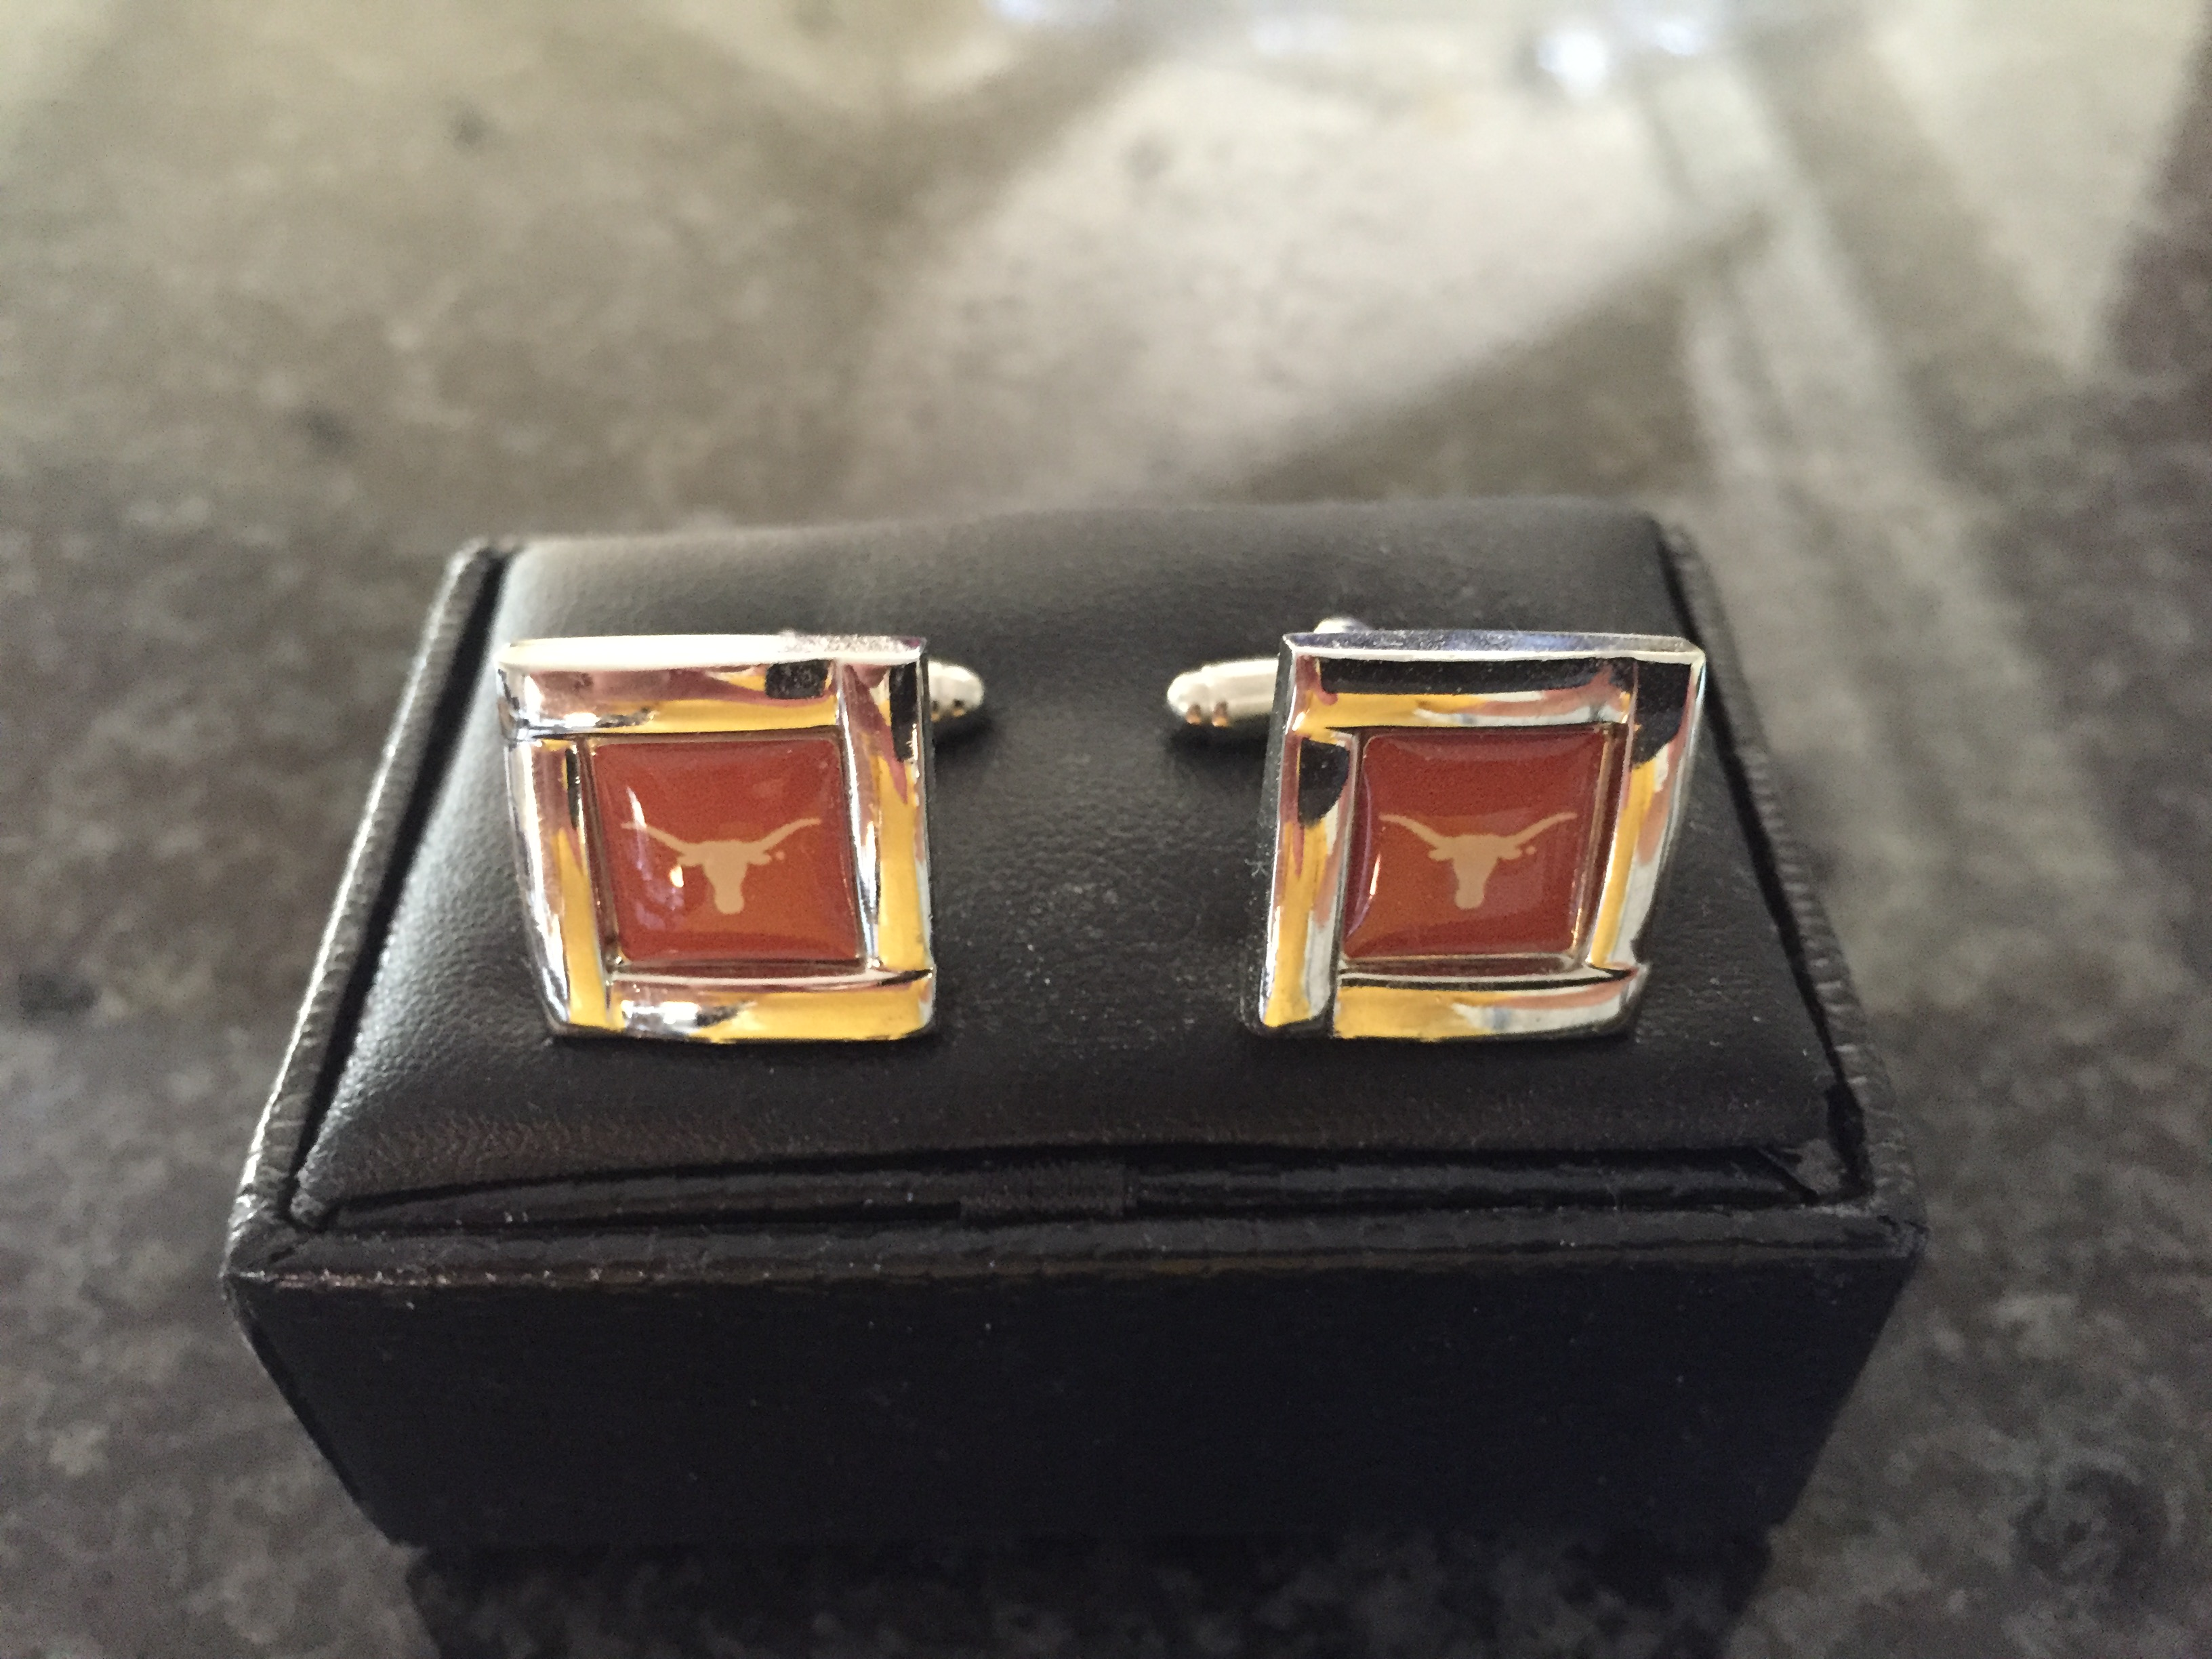 Connecting with Your Customers, Longhorn cuff links, big data